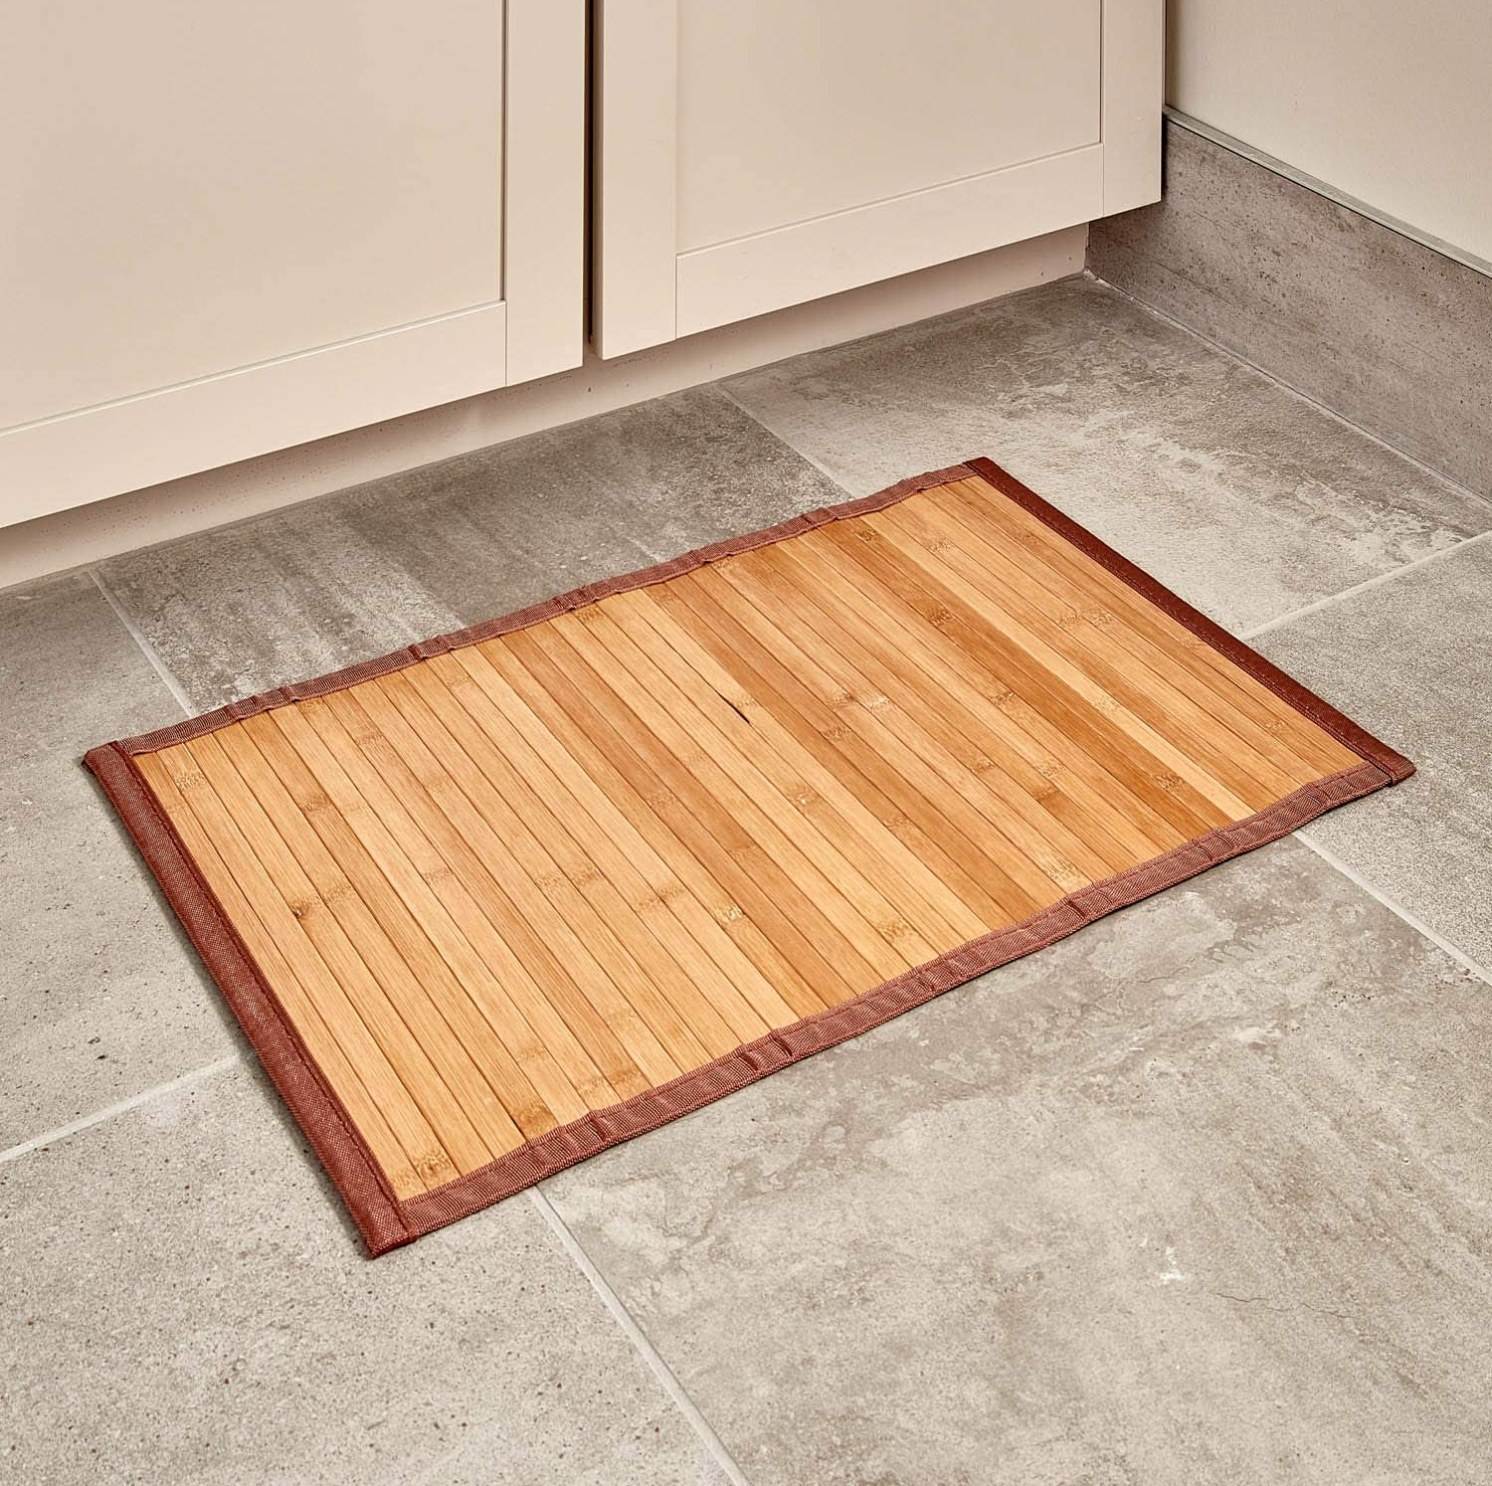 The bamboo mat in front of cabinets